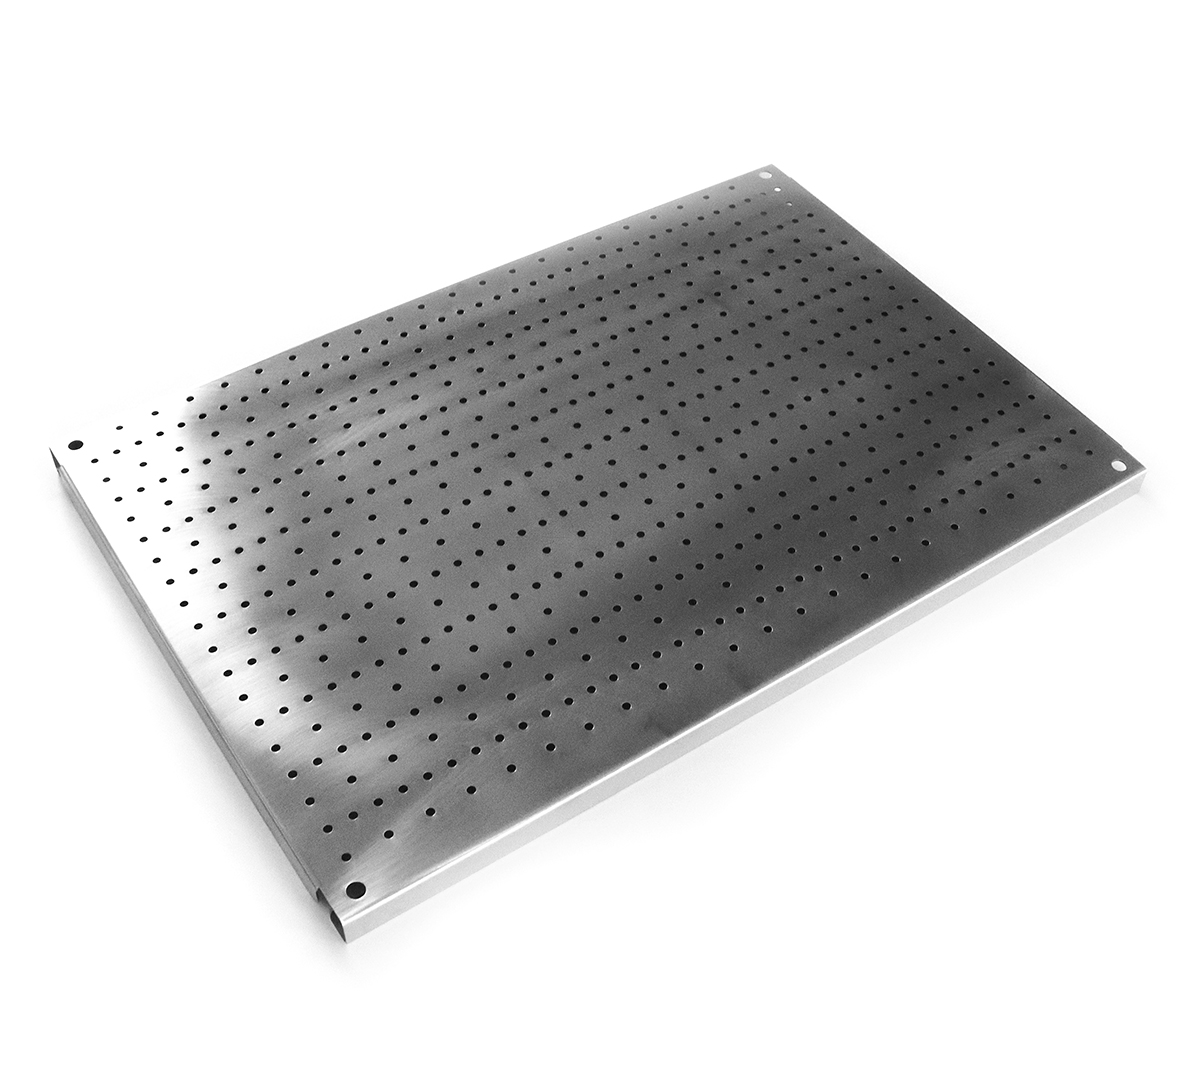 Stainless steel perforated board